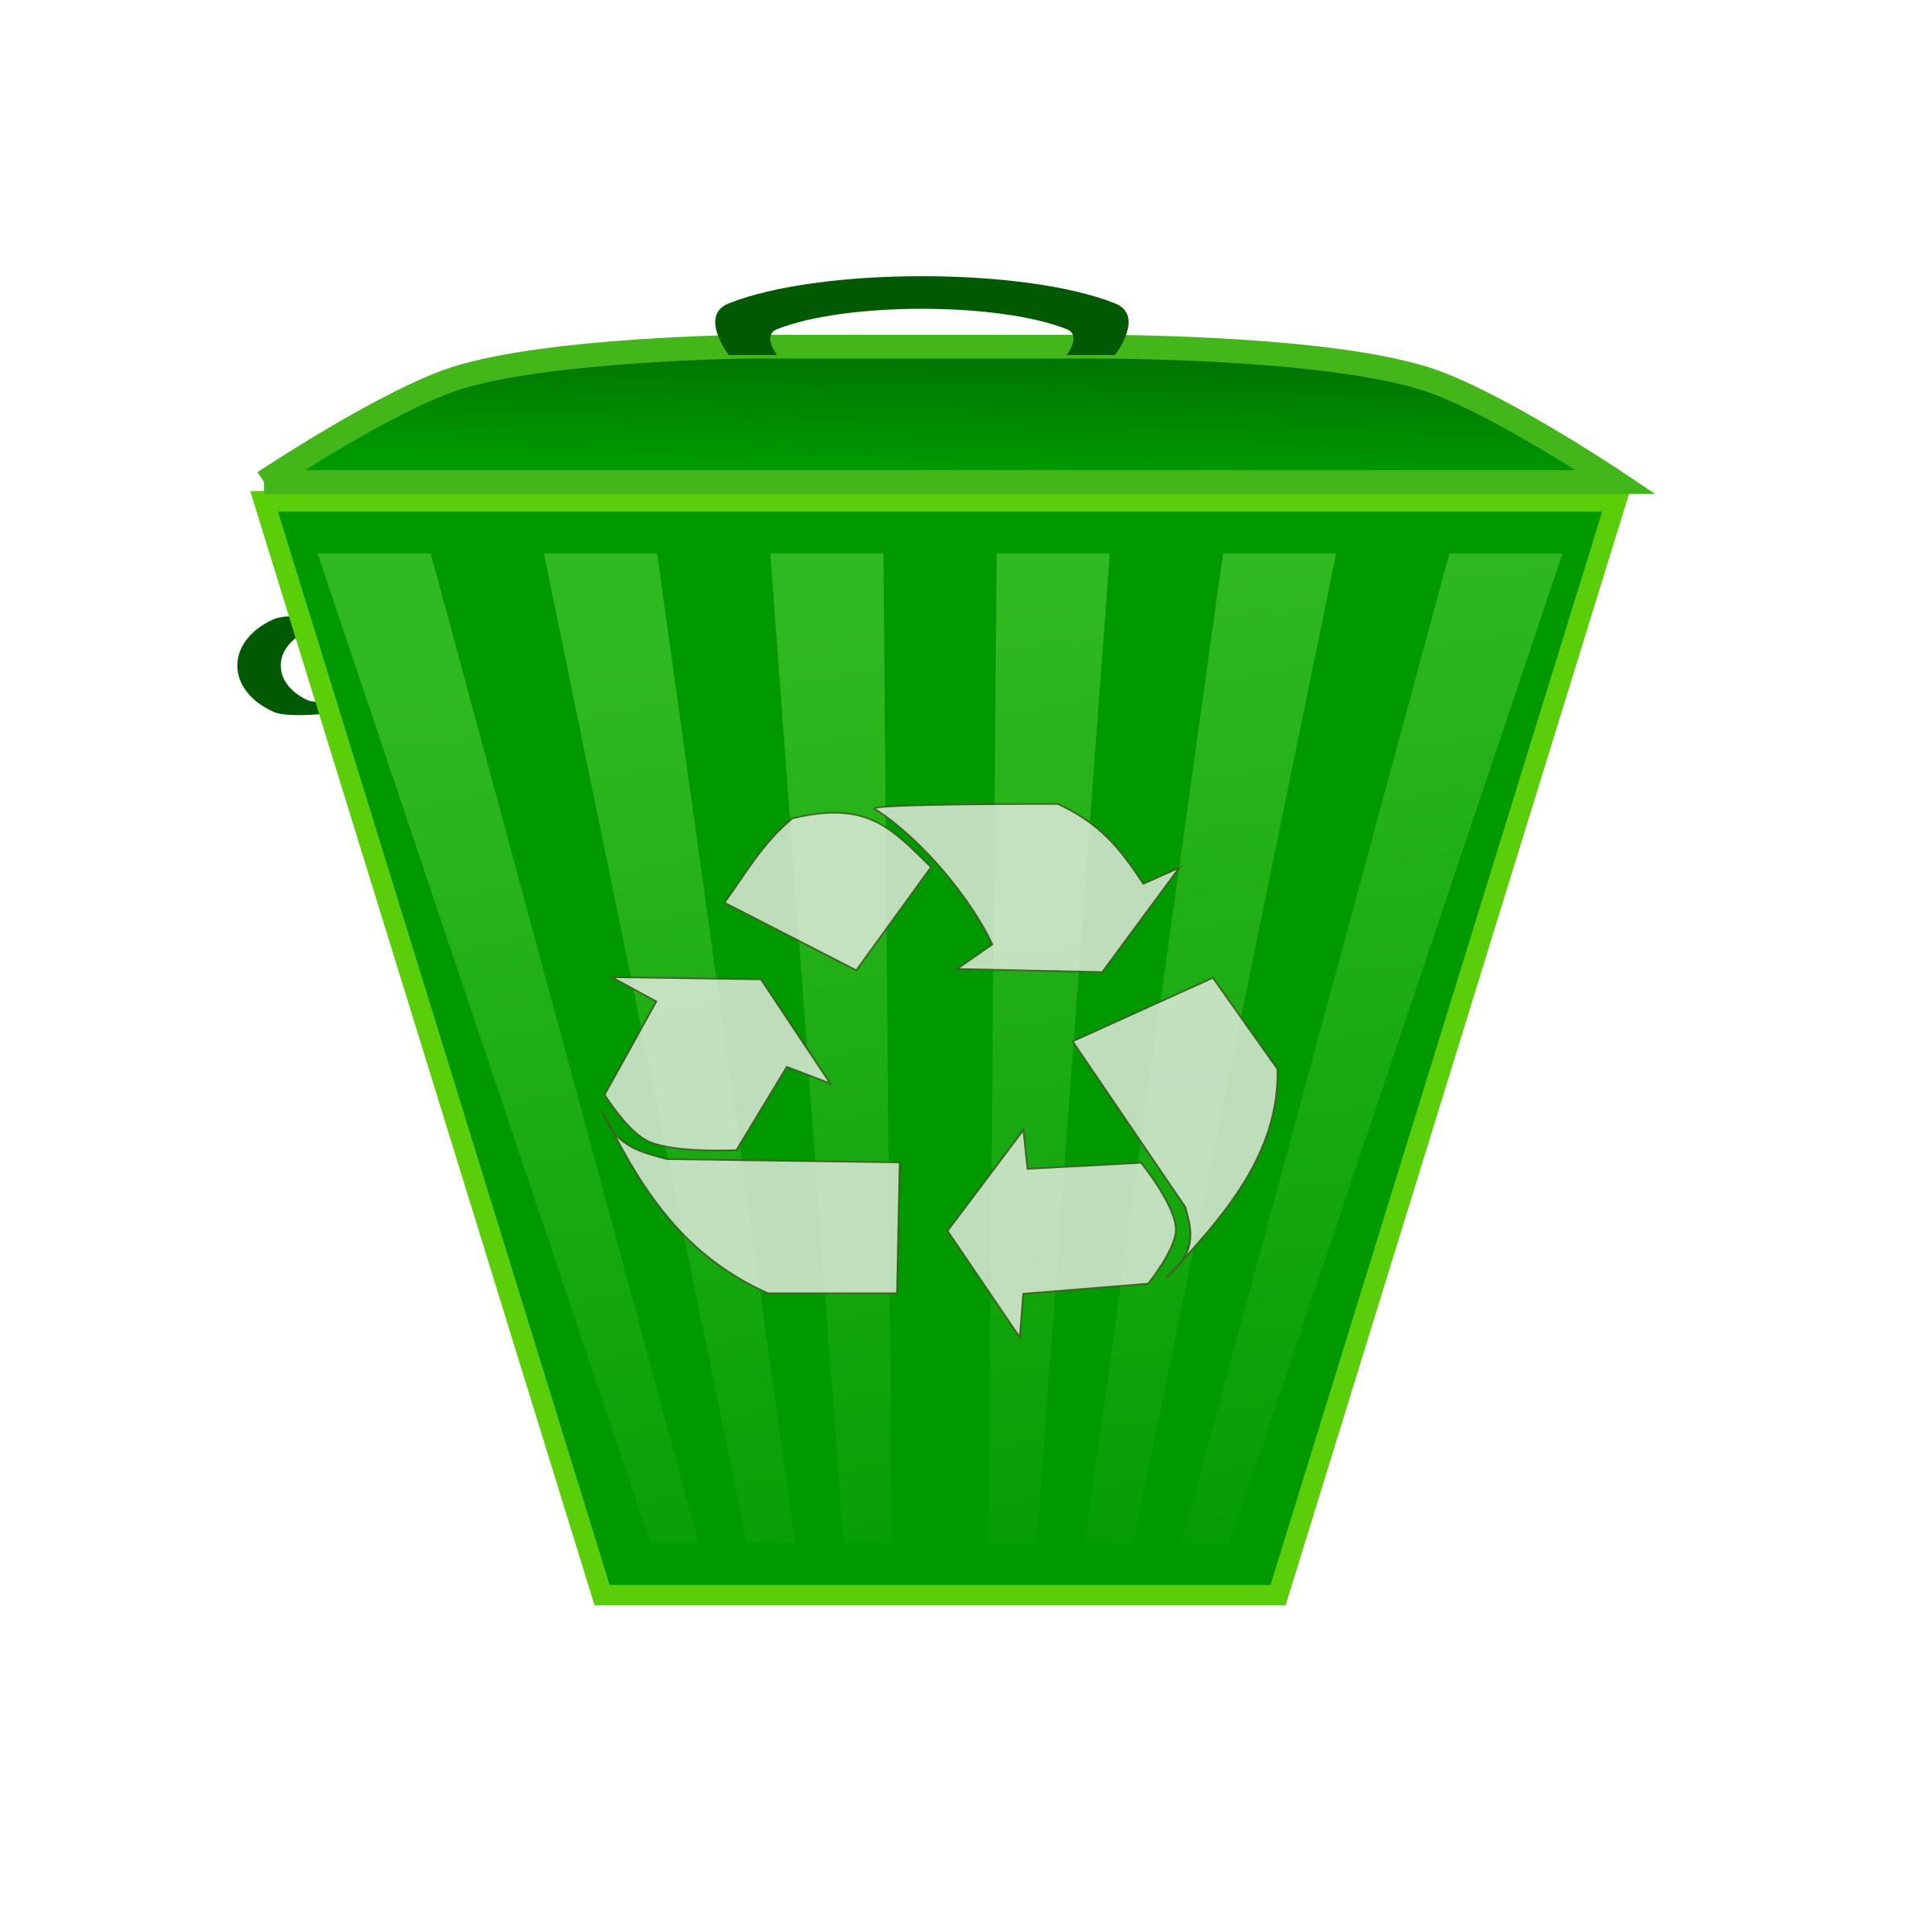 Lunchbox clipart bin. Backgrounds fantastic image by